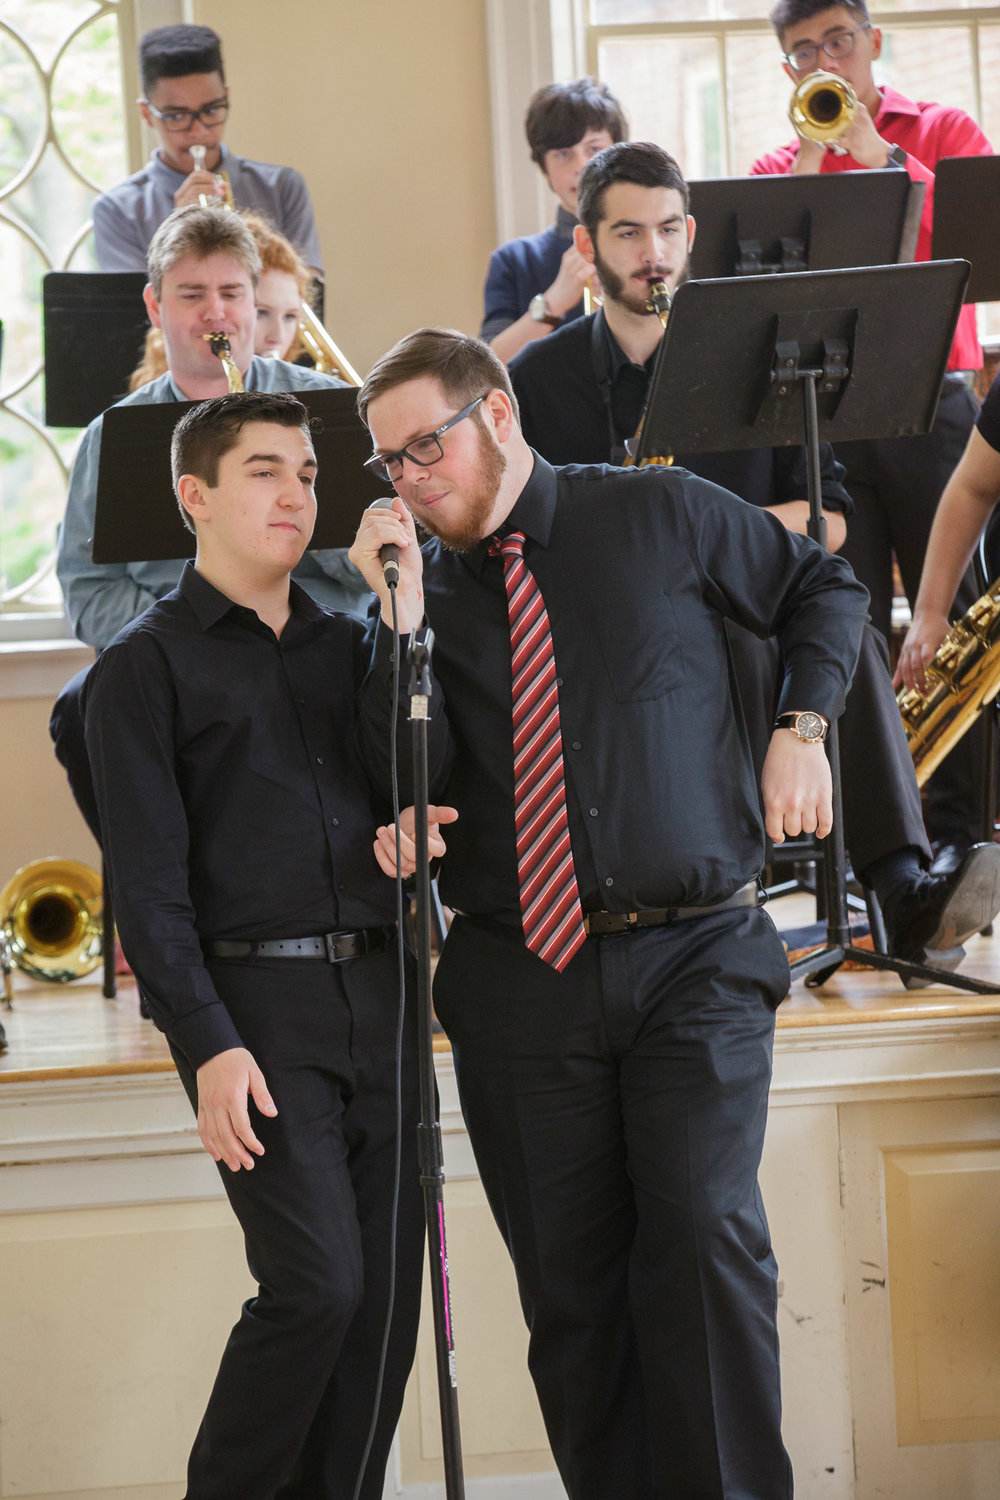 Salem High Jazz Band